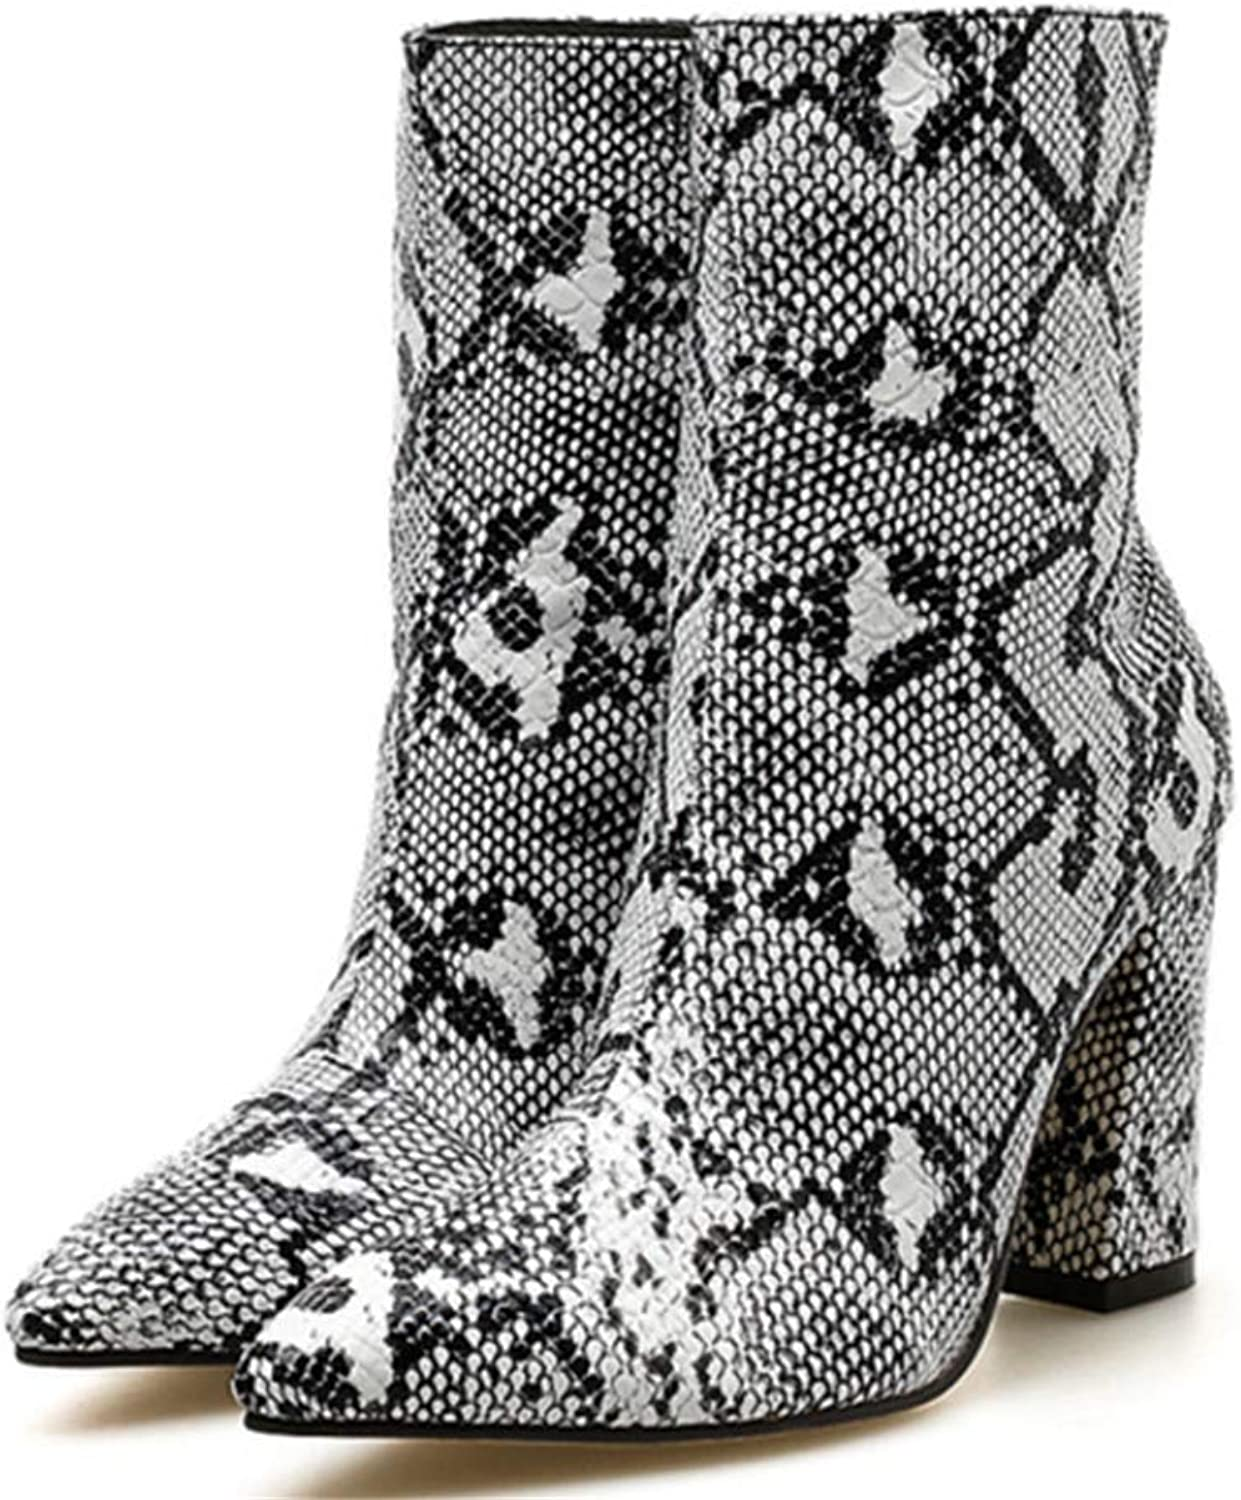 F1rst Rate Women shoes Boots Snakeskin Pattern Thick Pointed Toe Zip Booties